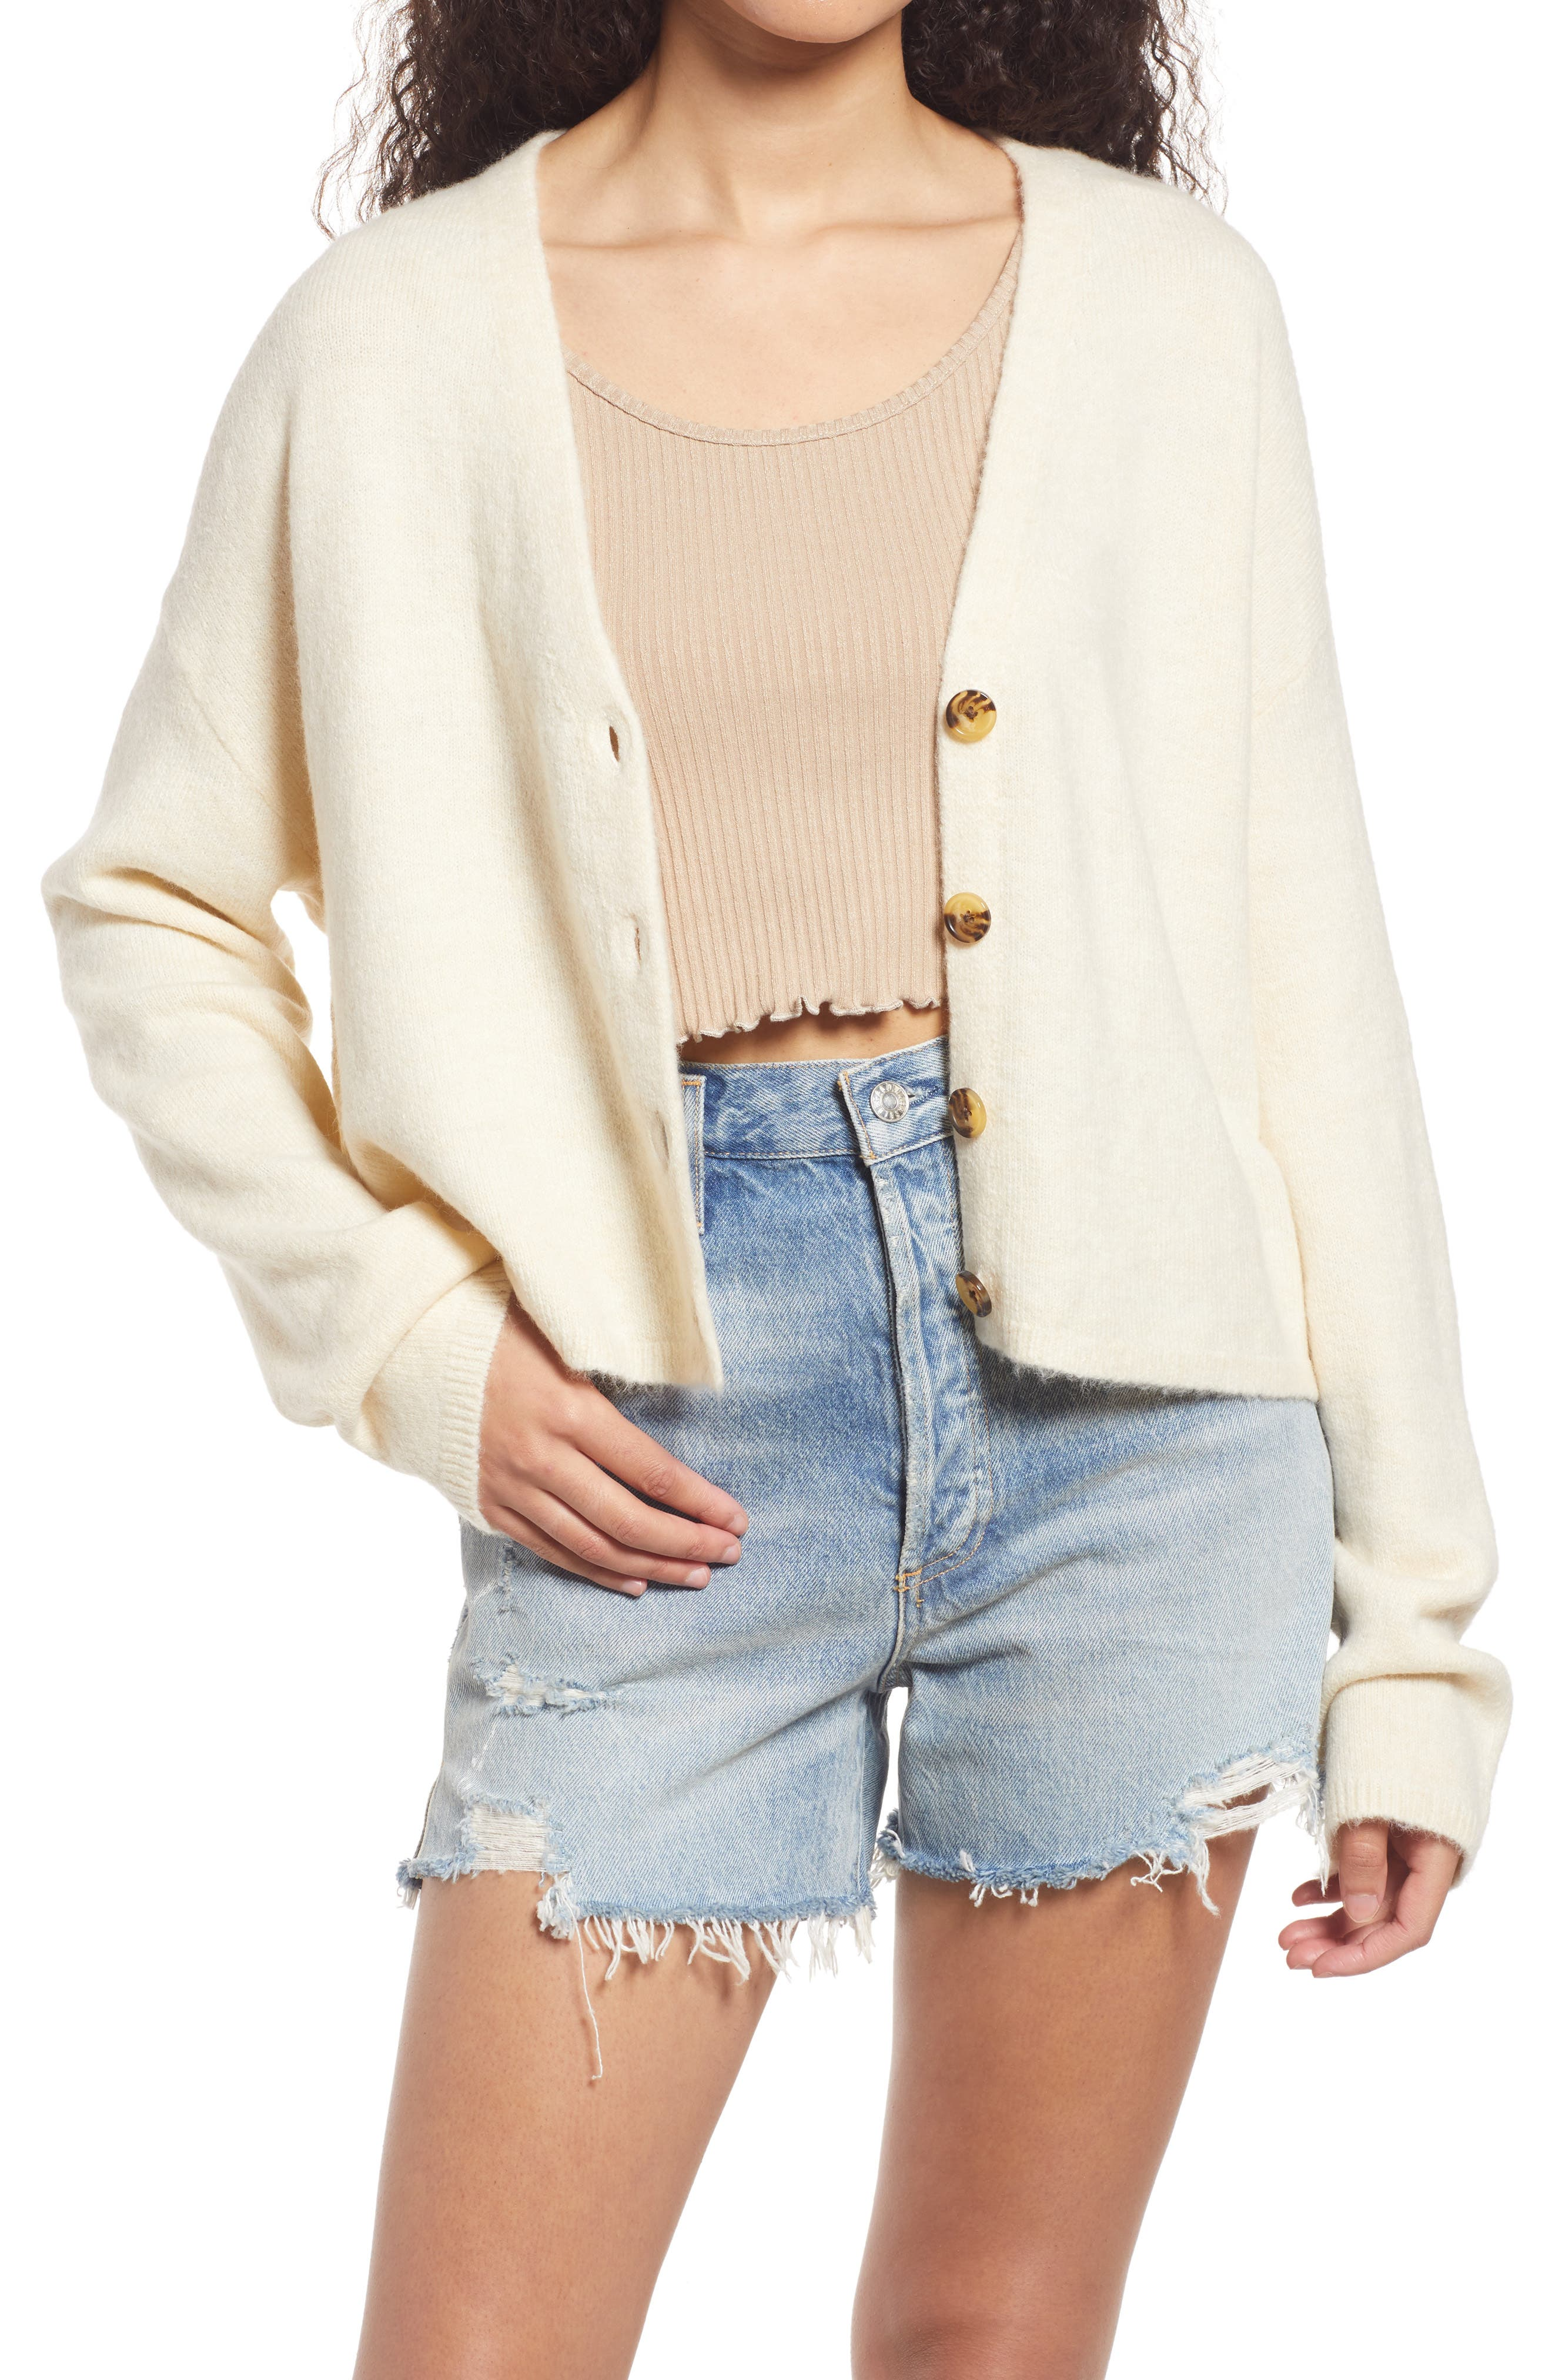 Short N Sweet Button Up Cardigan Sweater